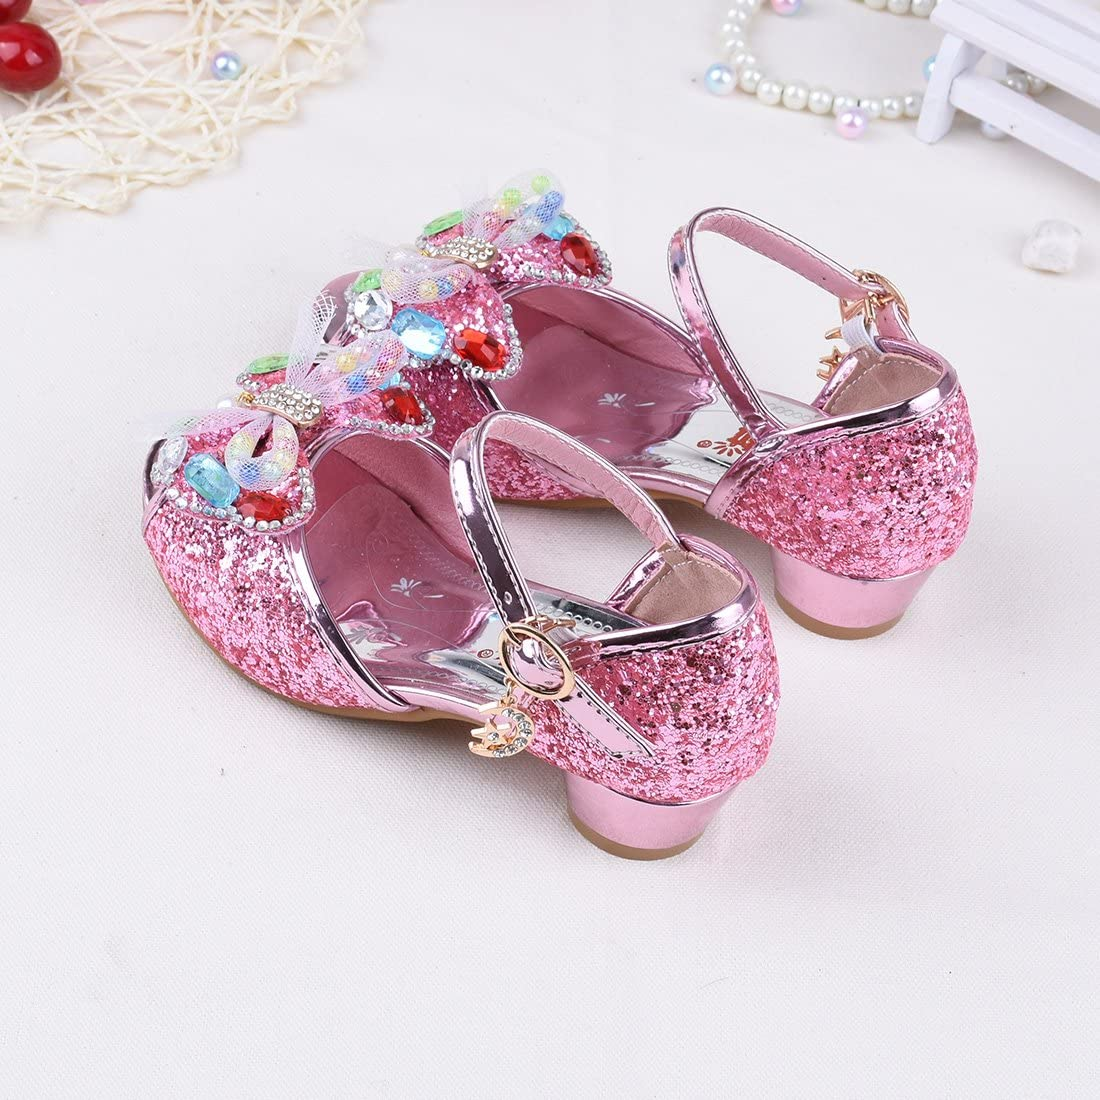 HBOS Butterfly Wings High Heel Sandals Summer Open Toe Princess Ankle Shoes Child Baby Girls